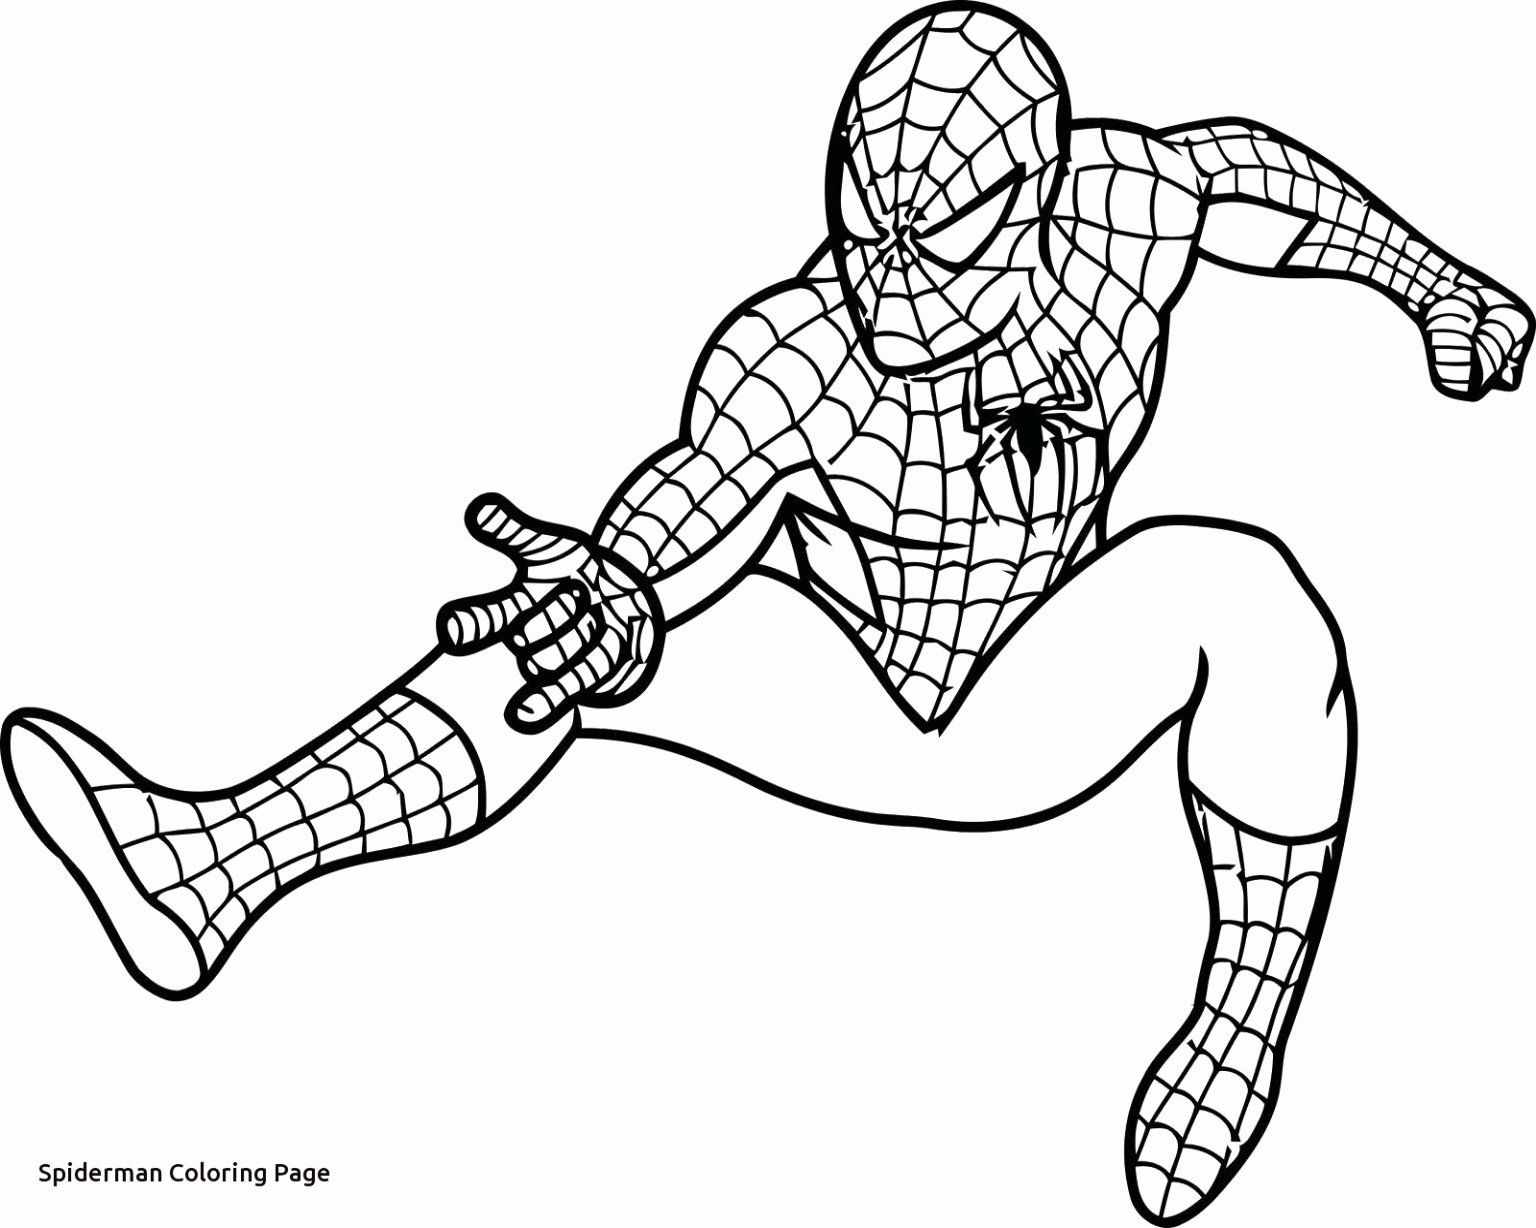 Turn Pictures Into Coloring Books New Venom Coloring Pages Turtle Coloring Pages Lego Coloring Pages Spiderman Coloring